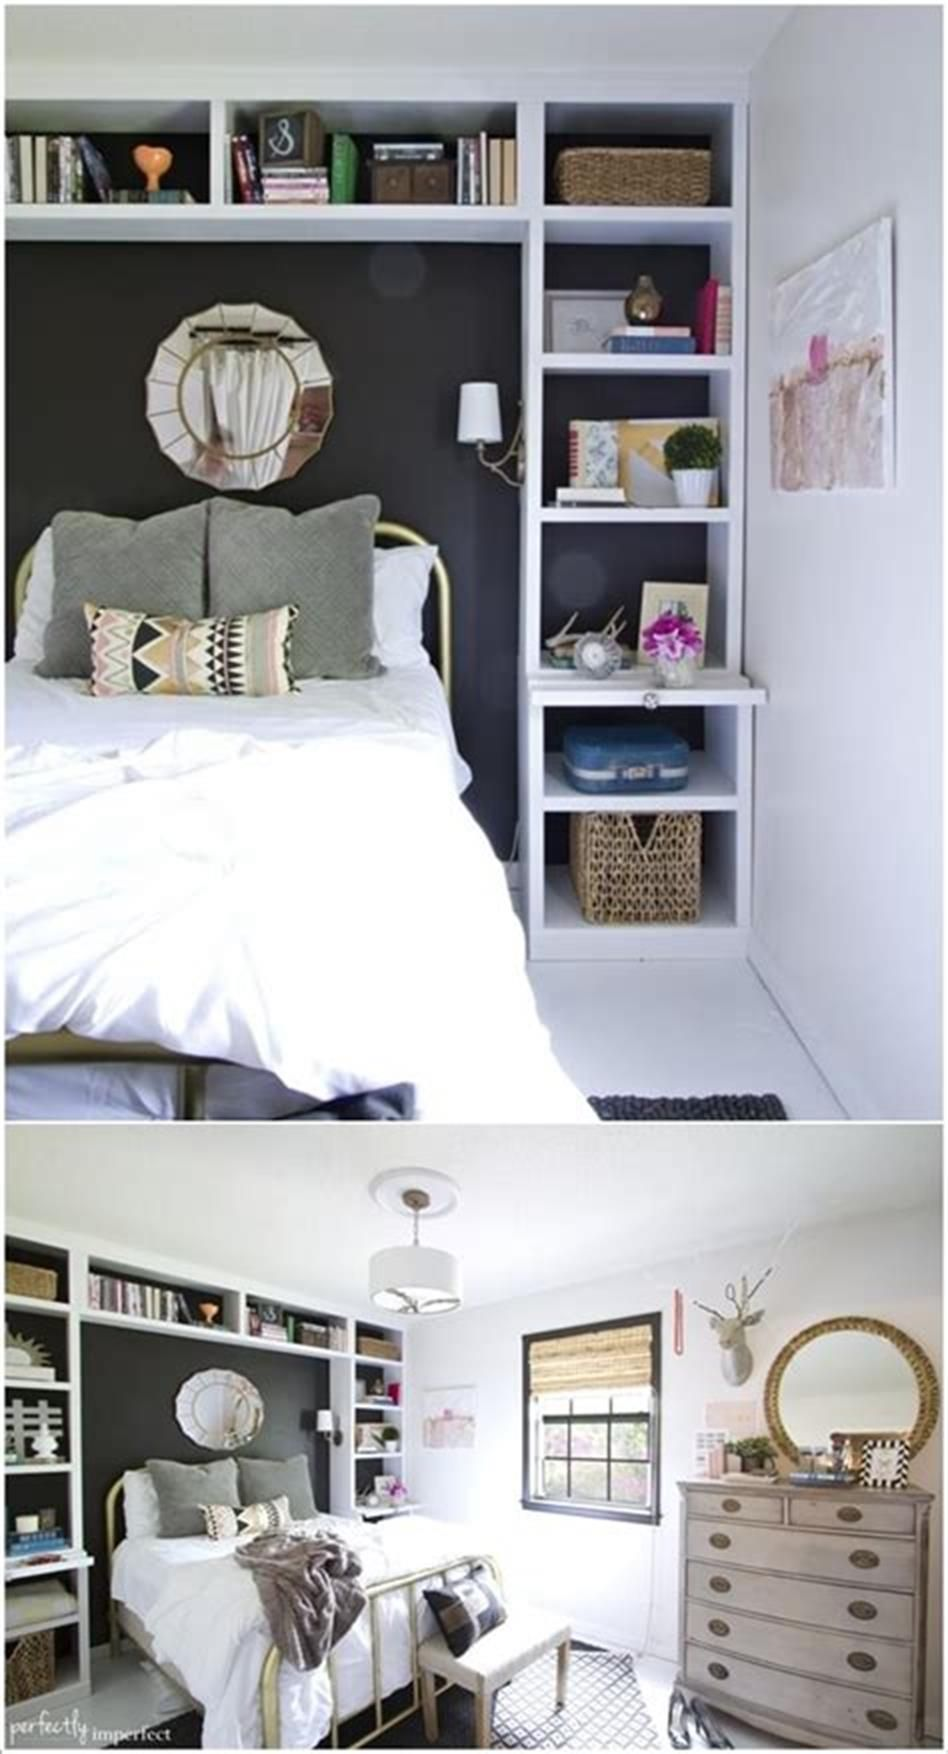 Best 45 Storage Ideas For Small Bedrooms On A Budget Comedecor Small Bedroom Ideas For Couples Small Bedroom Storage Small Room Bedroom